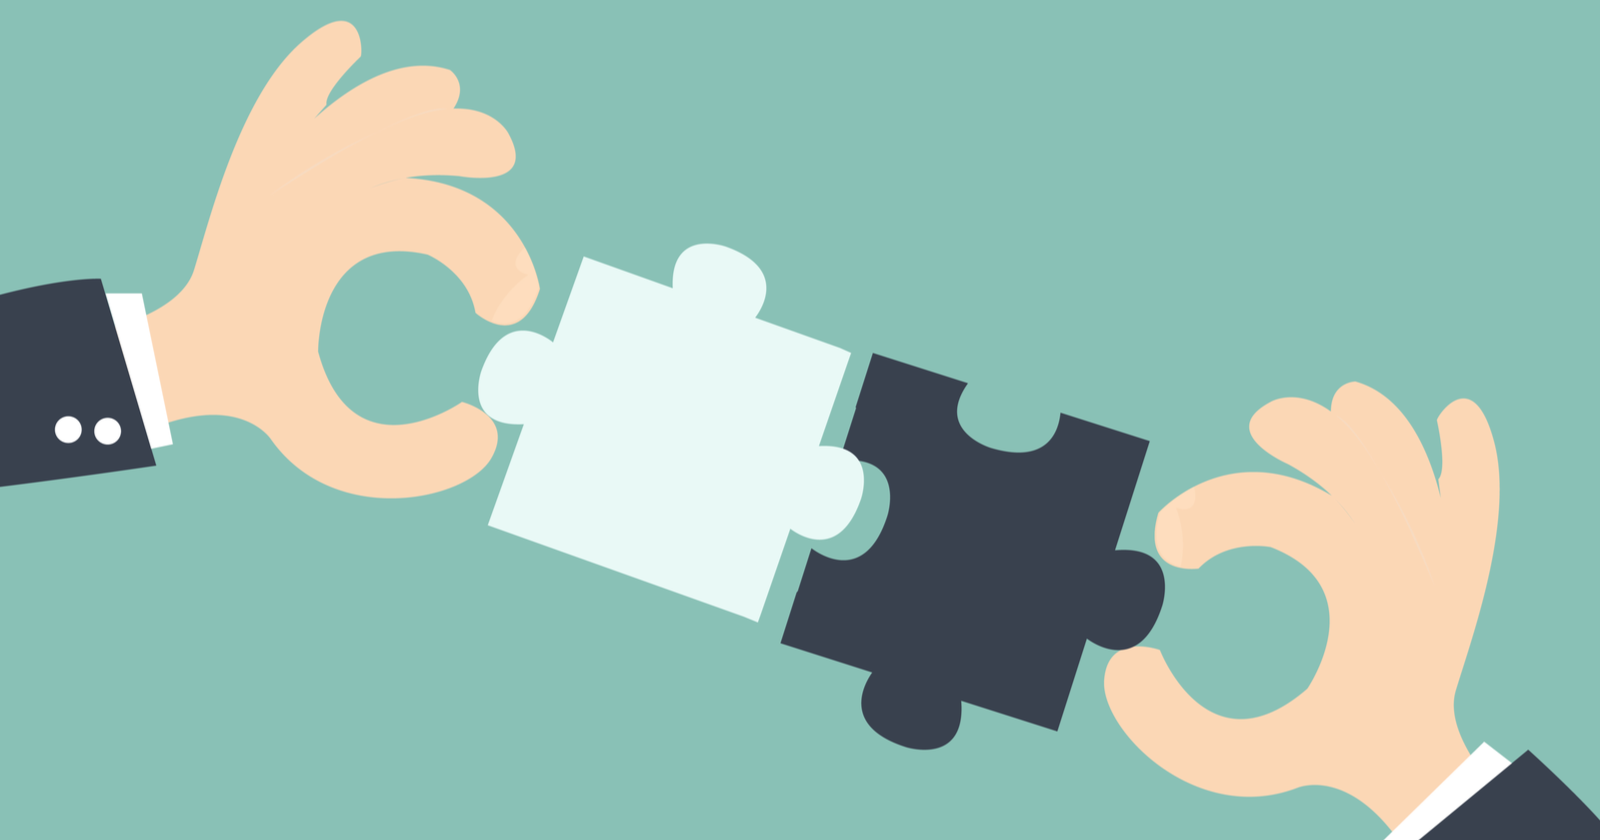 3 Alternative Link Building Tactics to Use Now